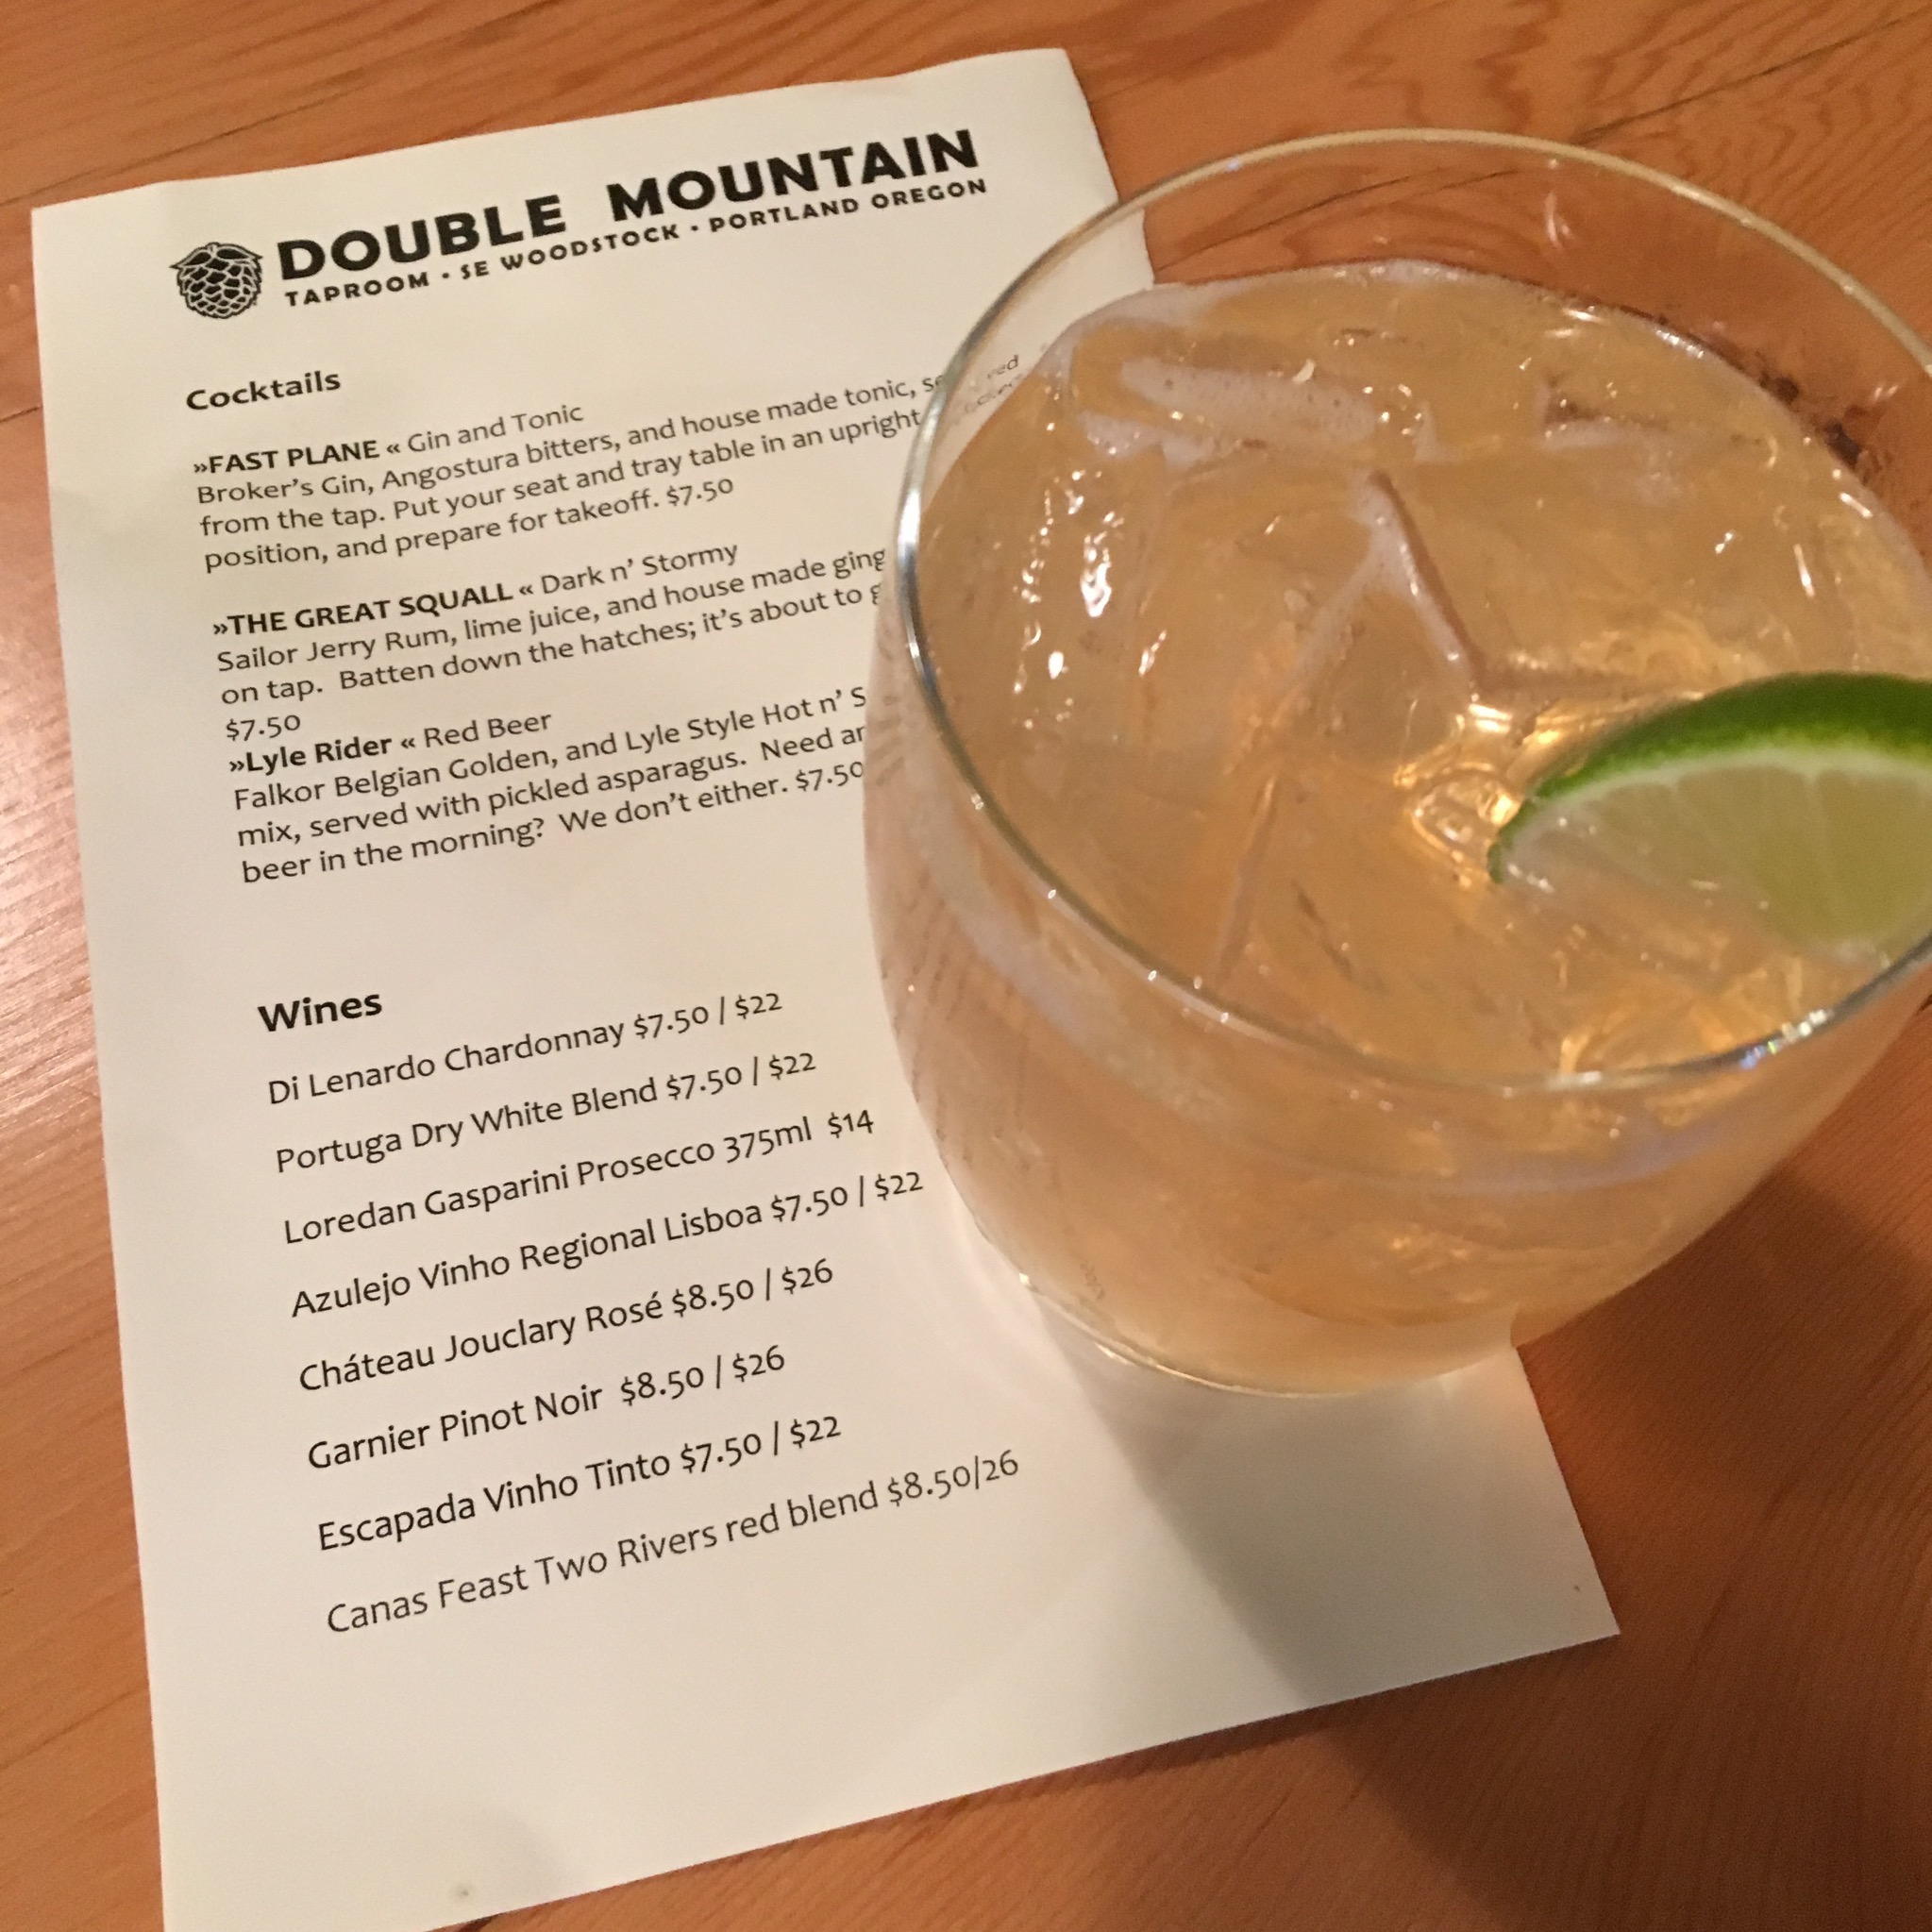 A Fast Plane Gin and Tonic alongside the Double Mountain Taproom Cocktail and Wine menu. (photo by Cat Stelzer)